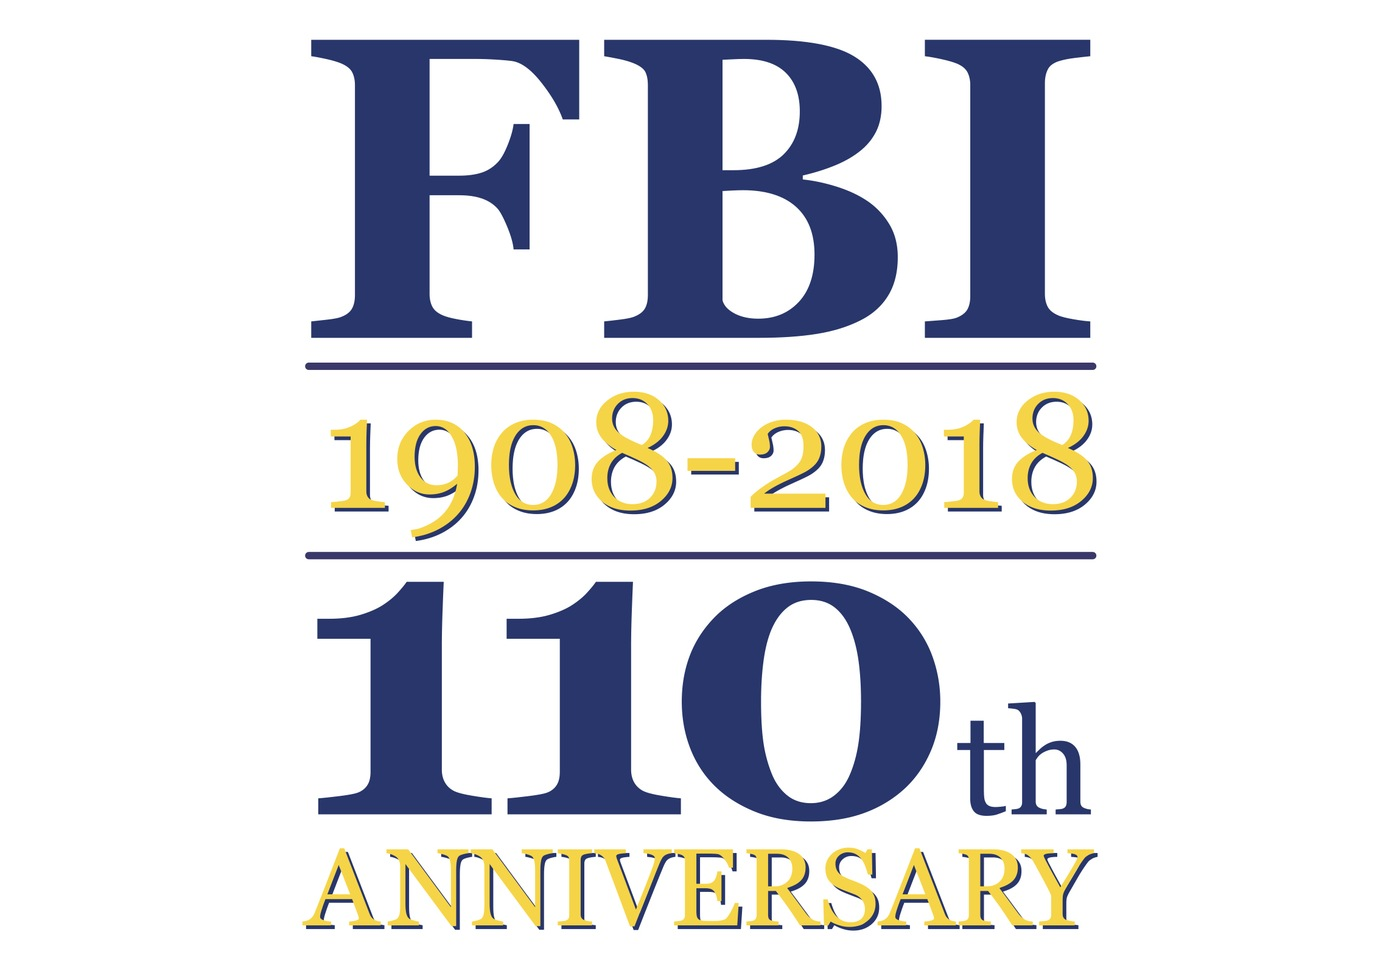 FBI 110th Anniversary Logo (Text Only)